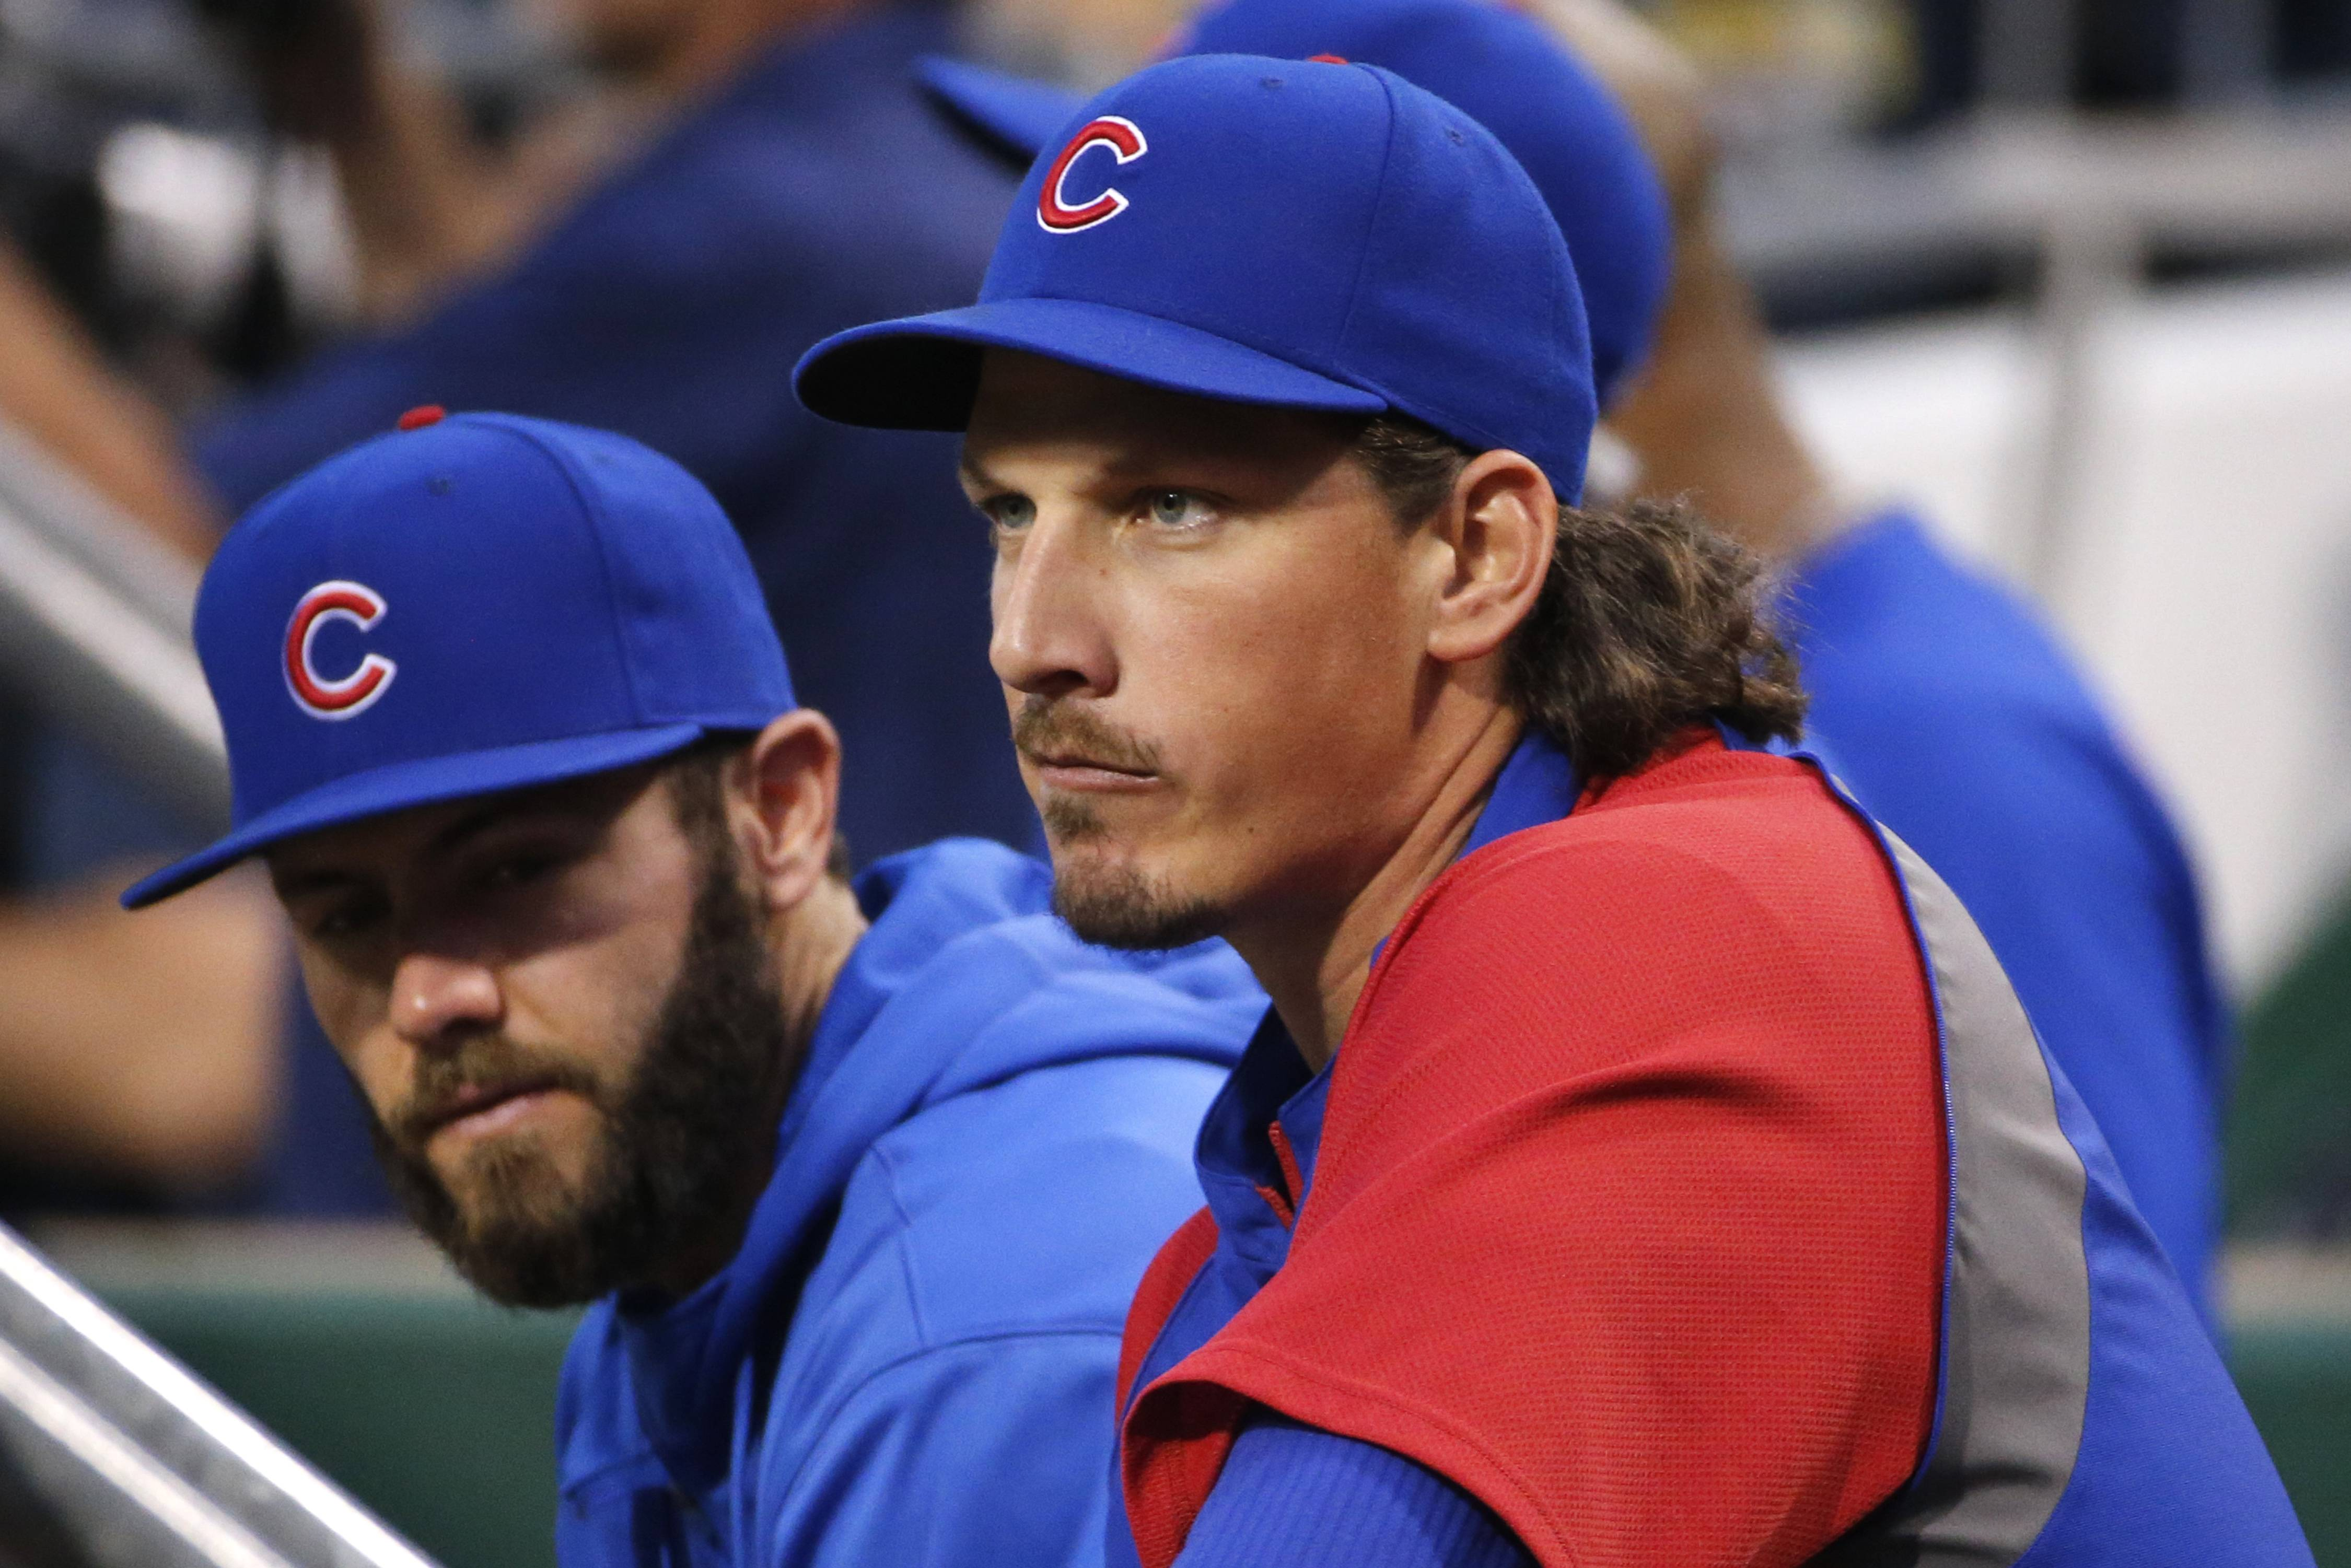 Some bigwigs around baseball believe the Cubs got the short end of the stick in the trade that sent Jeff Samardzija, above, and Jason Hammel to the A's.